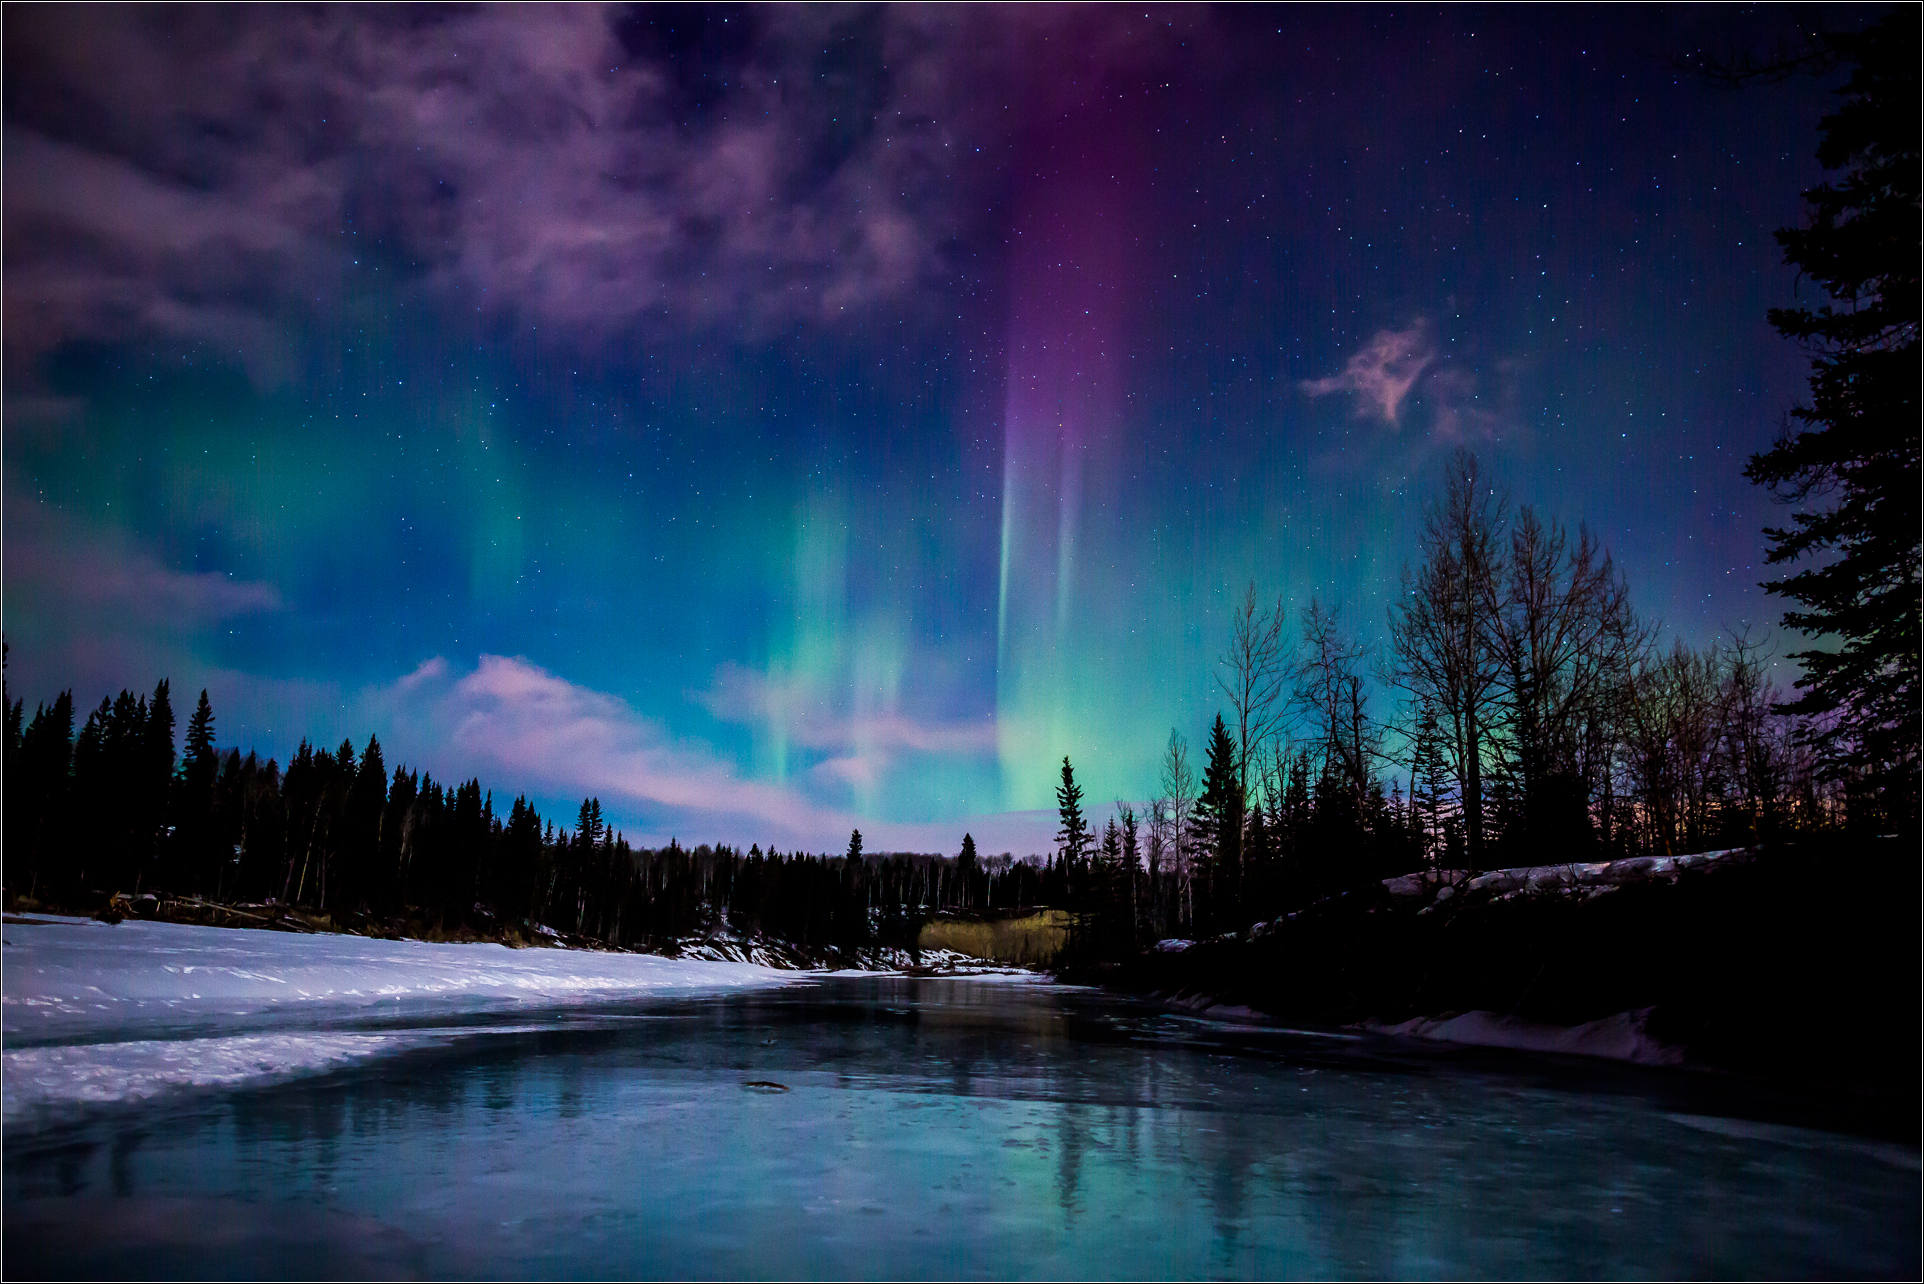 How To Make Your Own Live Wallpaper Iphone X Northern Lights Christopher Martin Photography